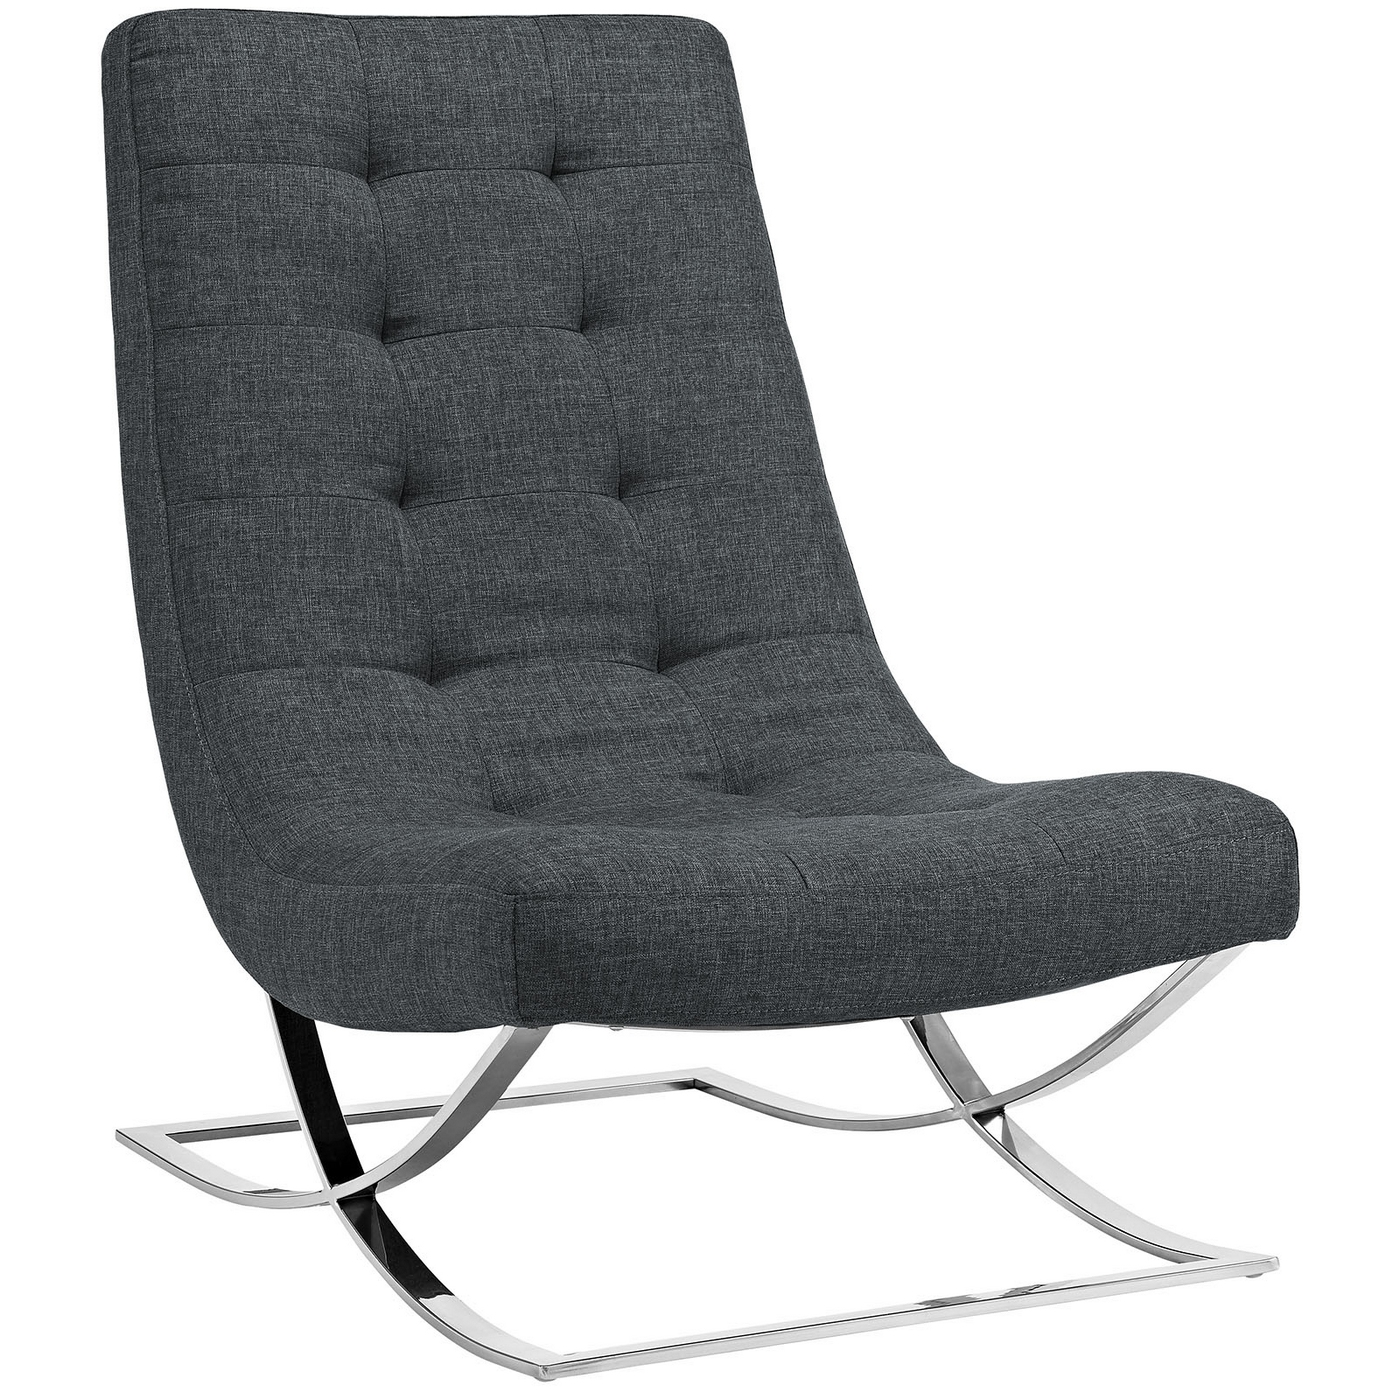 Slope Modern Button-tufted Fabric Lounge Chair With Chrome